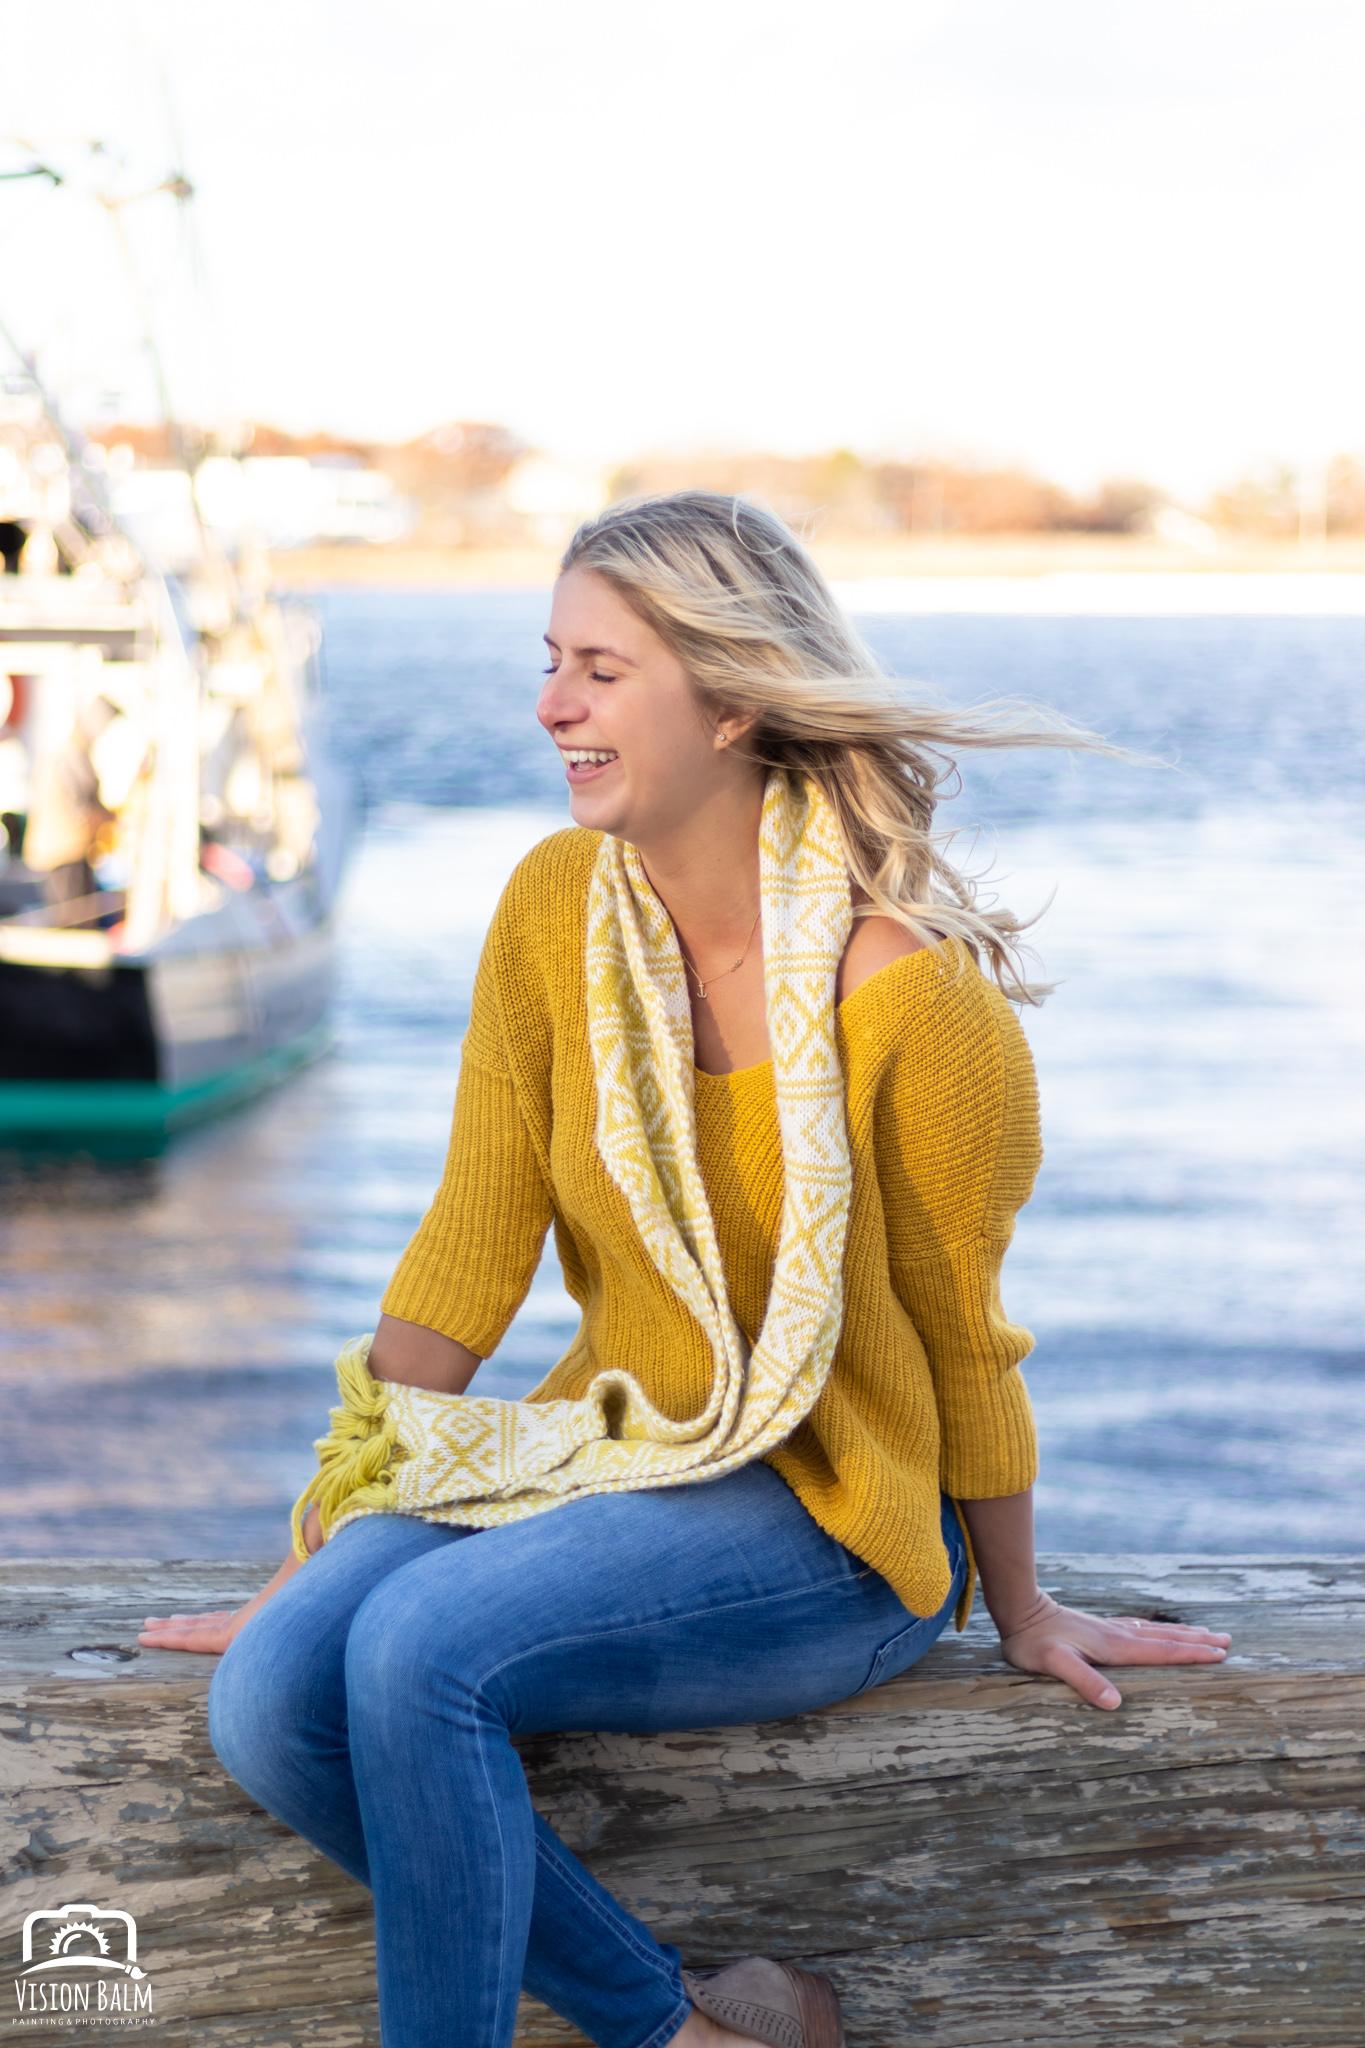 Professional fall portrait photography of model wearing a yellow sweater in downtown Newburyport, MA photographed by Vision Balm in Charleston, SC.